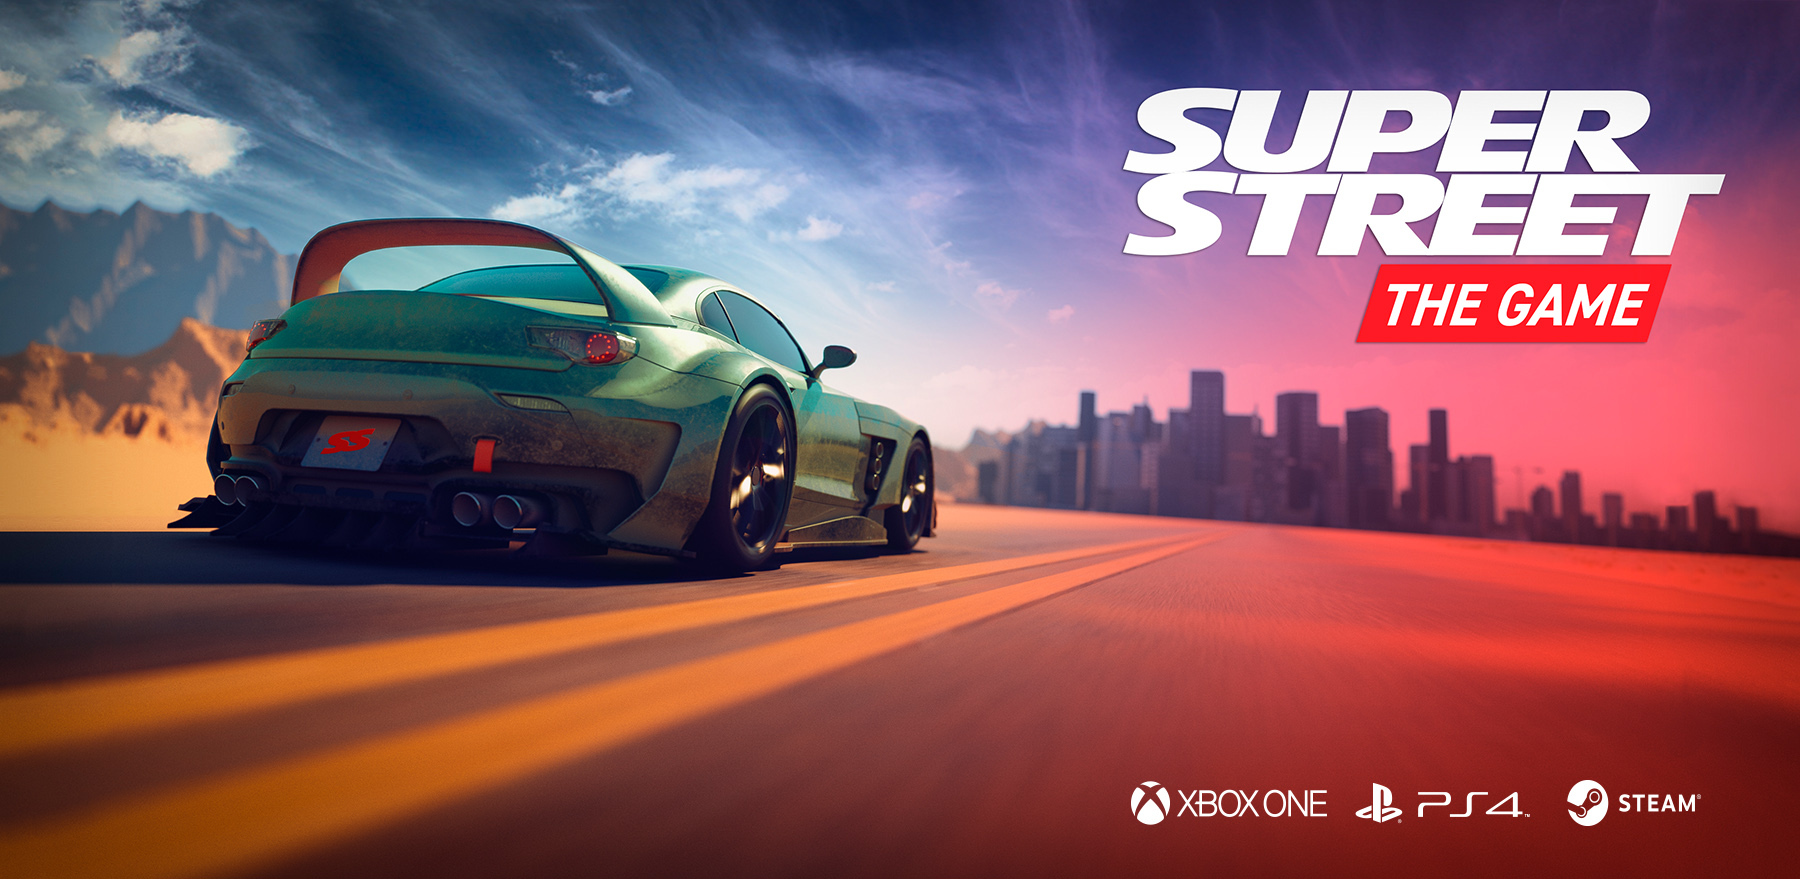 Super Street The Game - Super Street The Game Арт